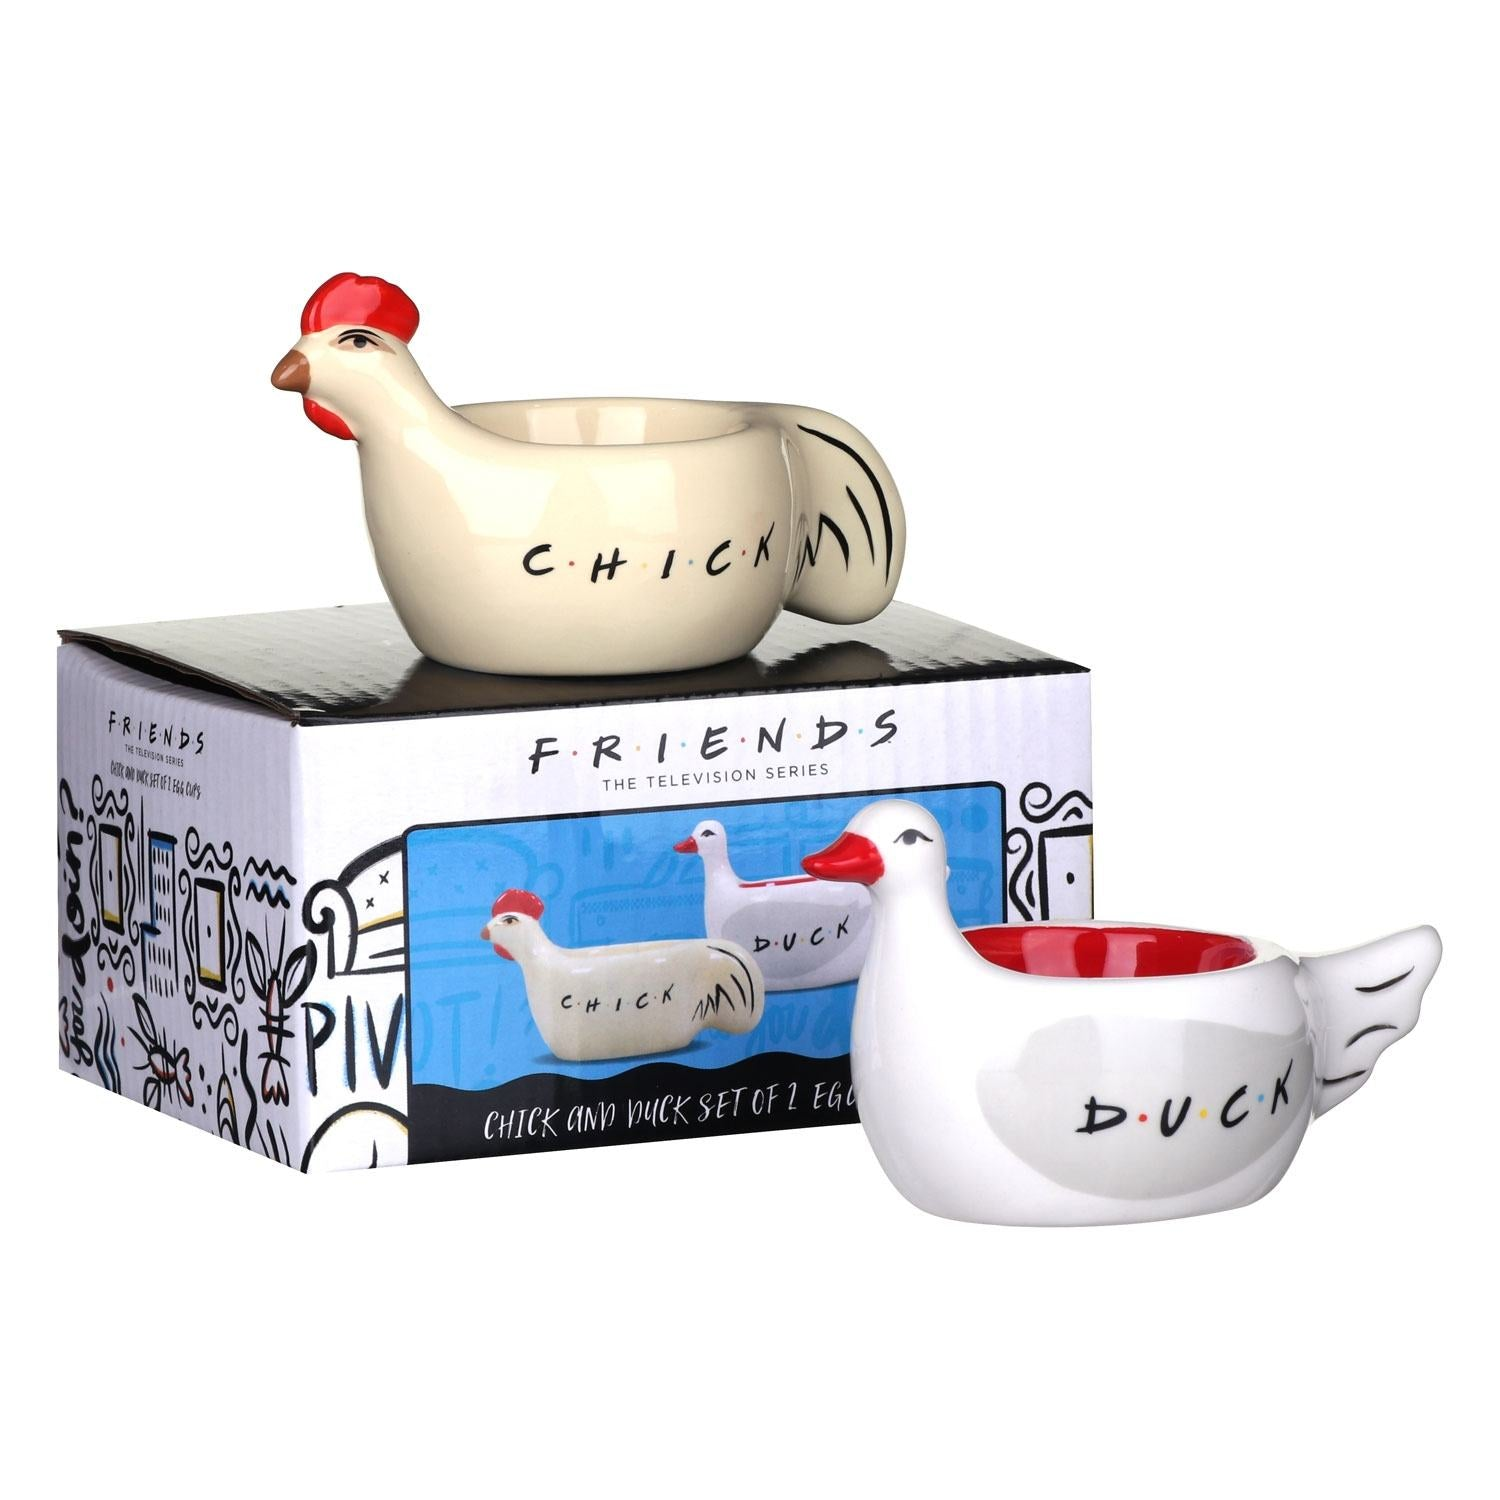 Friends Chick & Duck Egg Cups